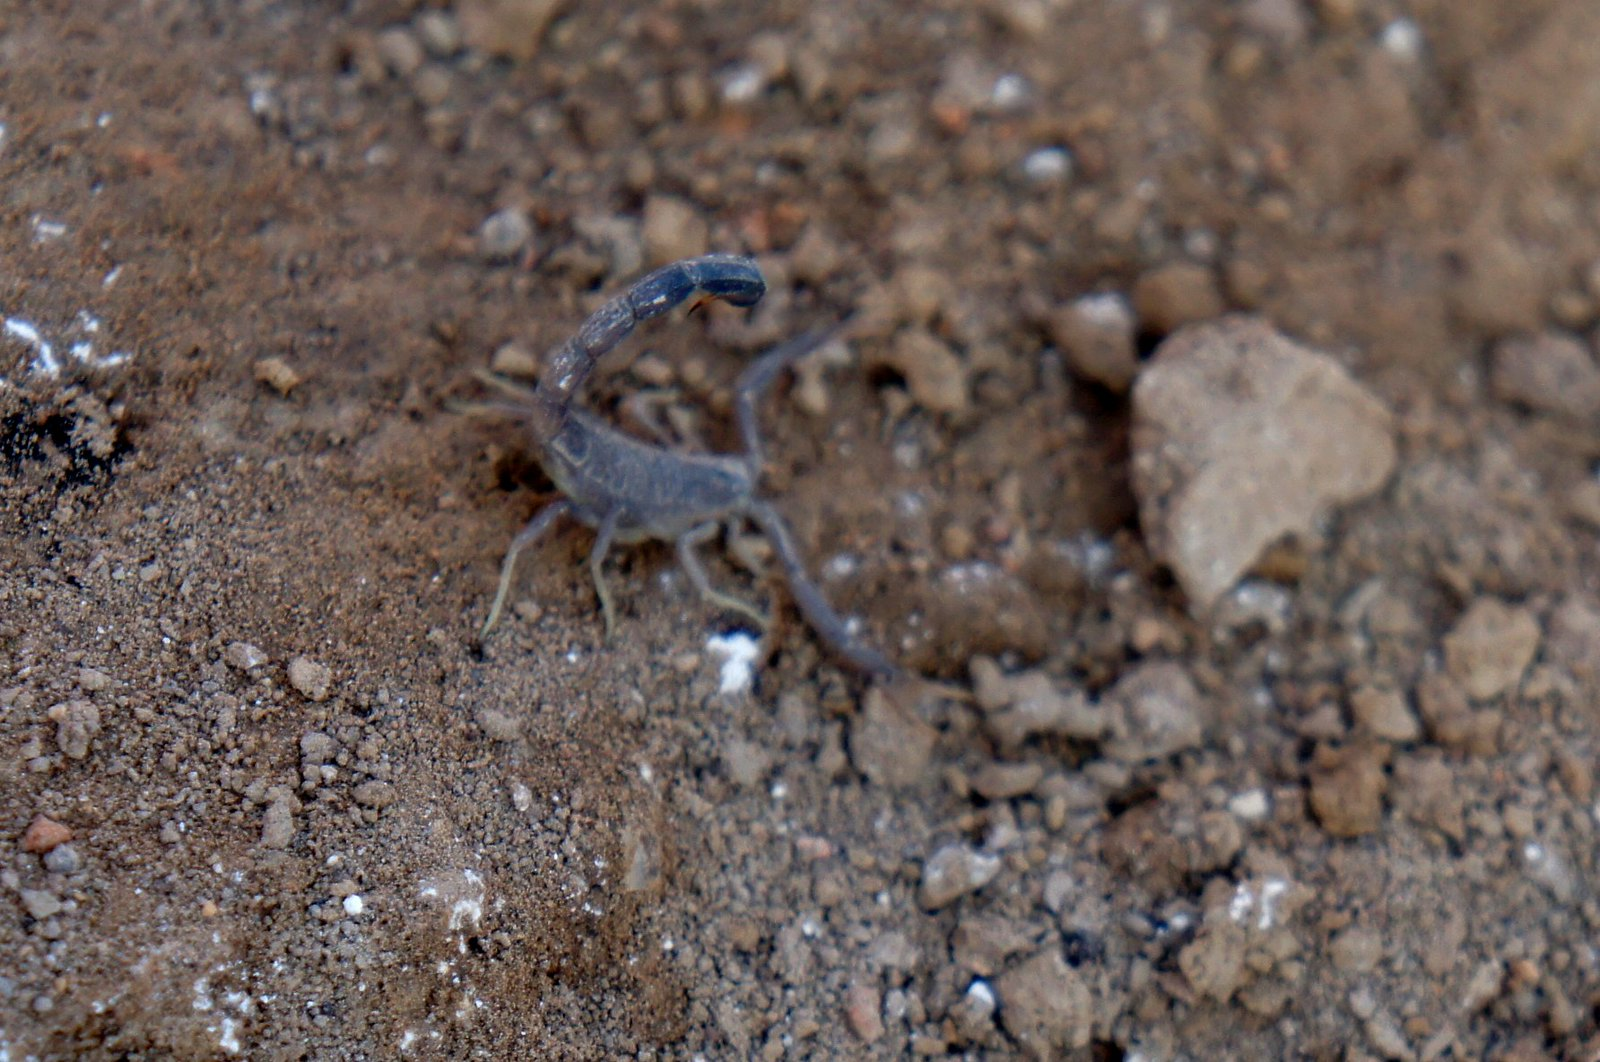 A little wildlife: baby scorpion.